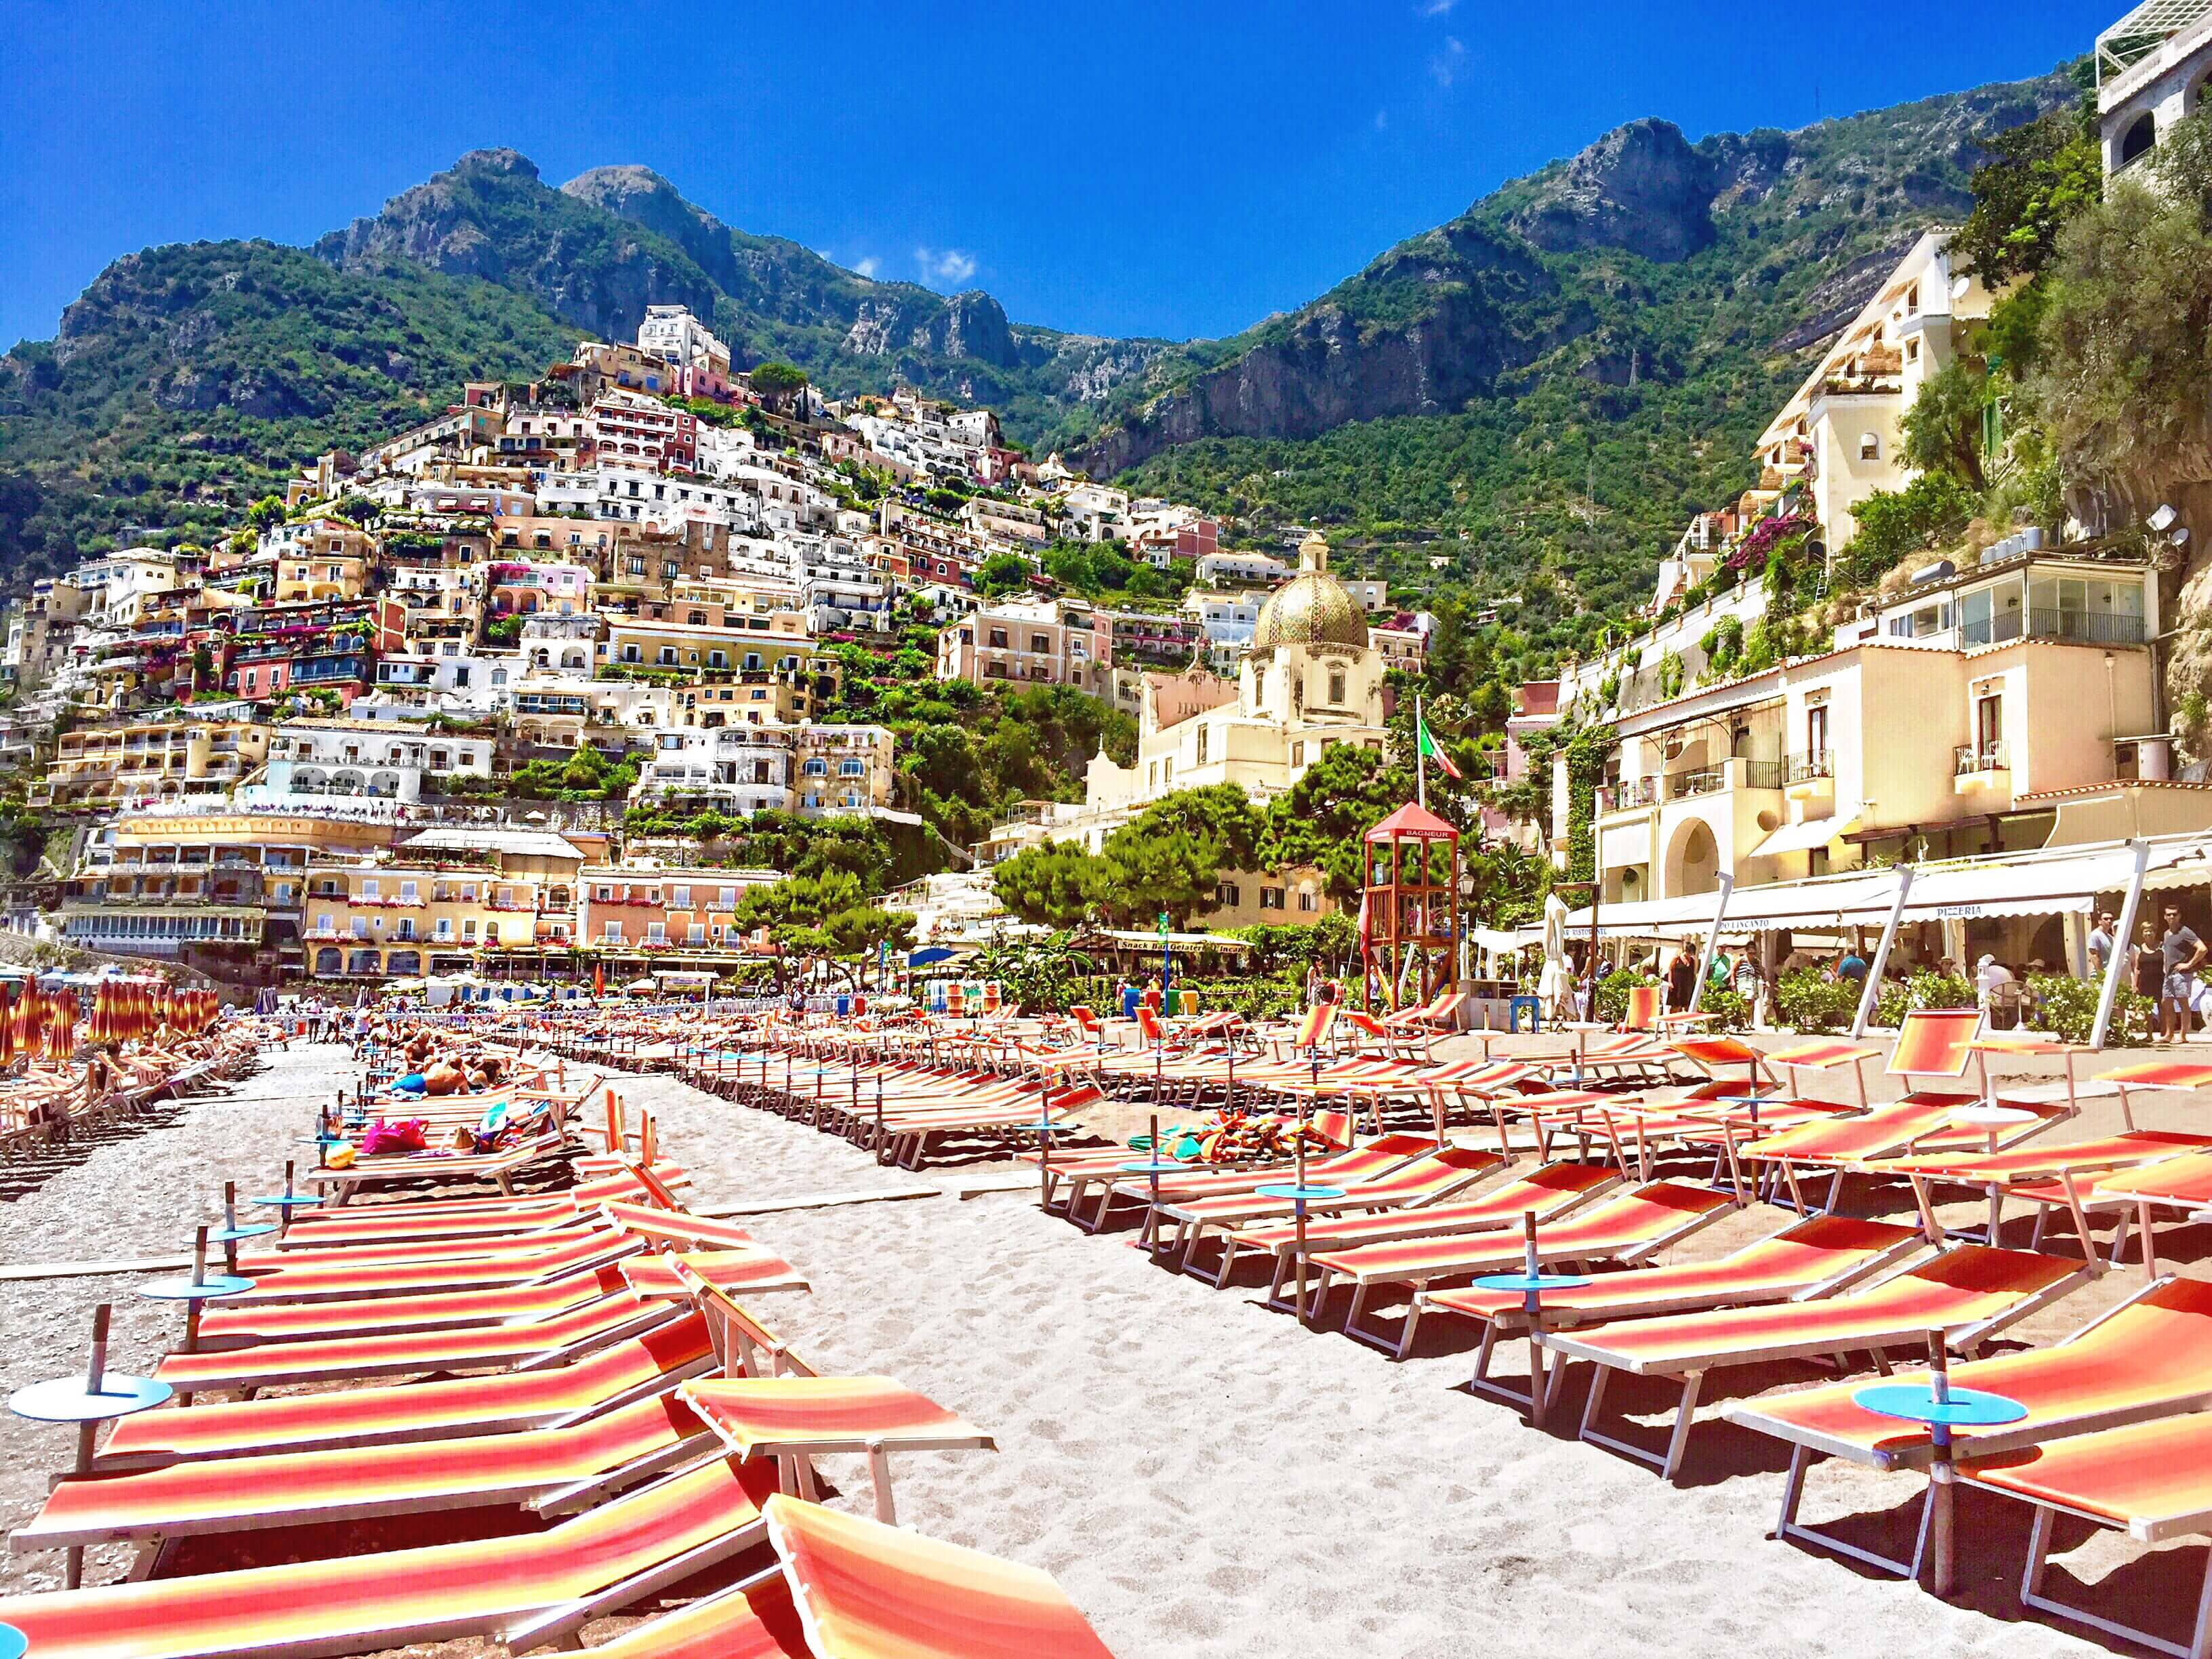 Orange lounges lined up on the beach in Positano